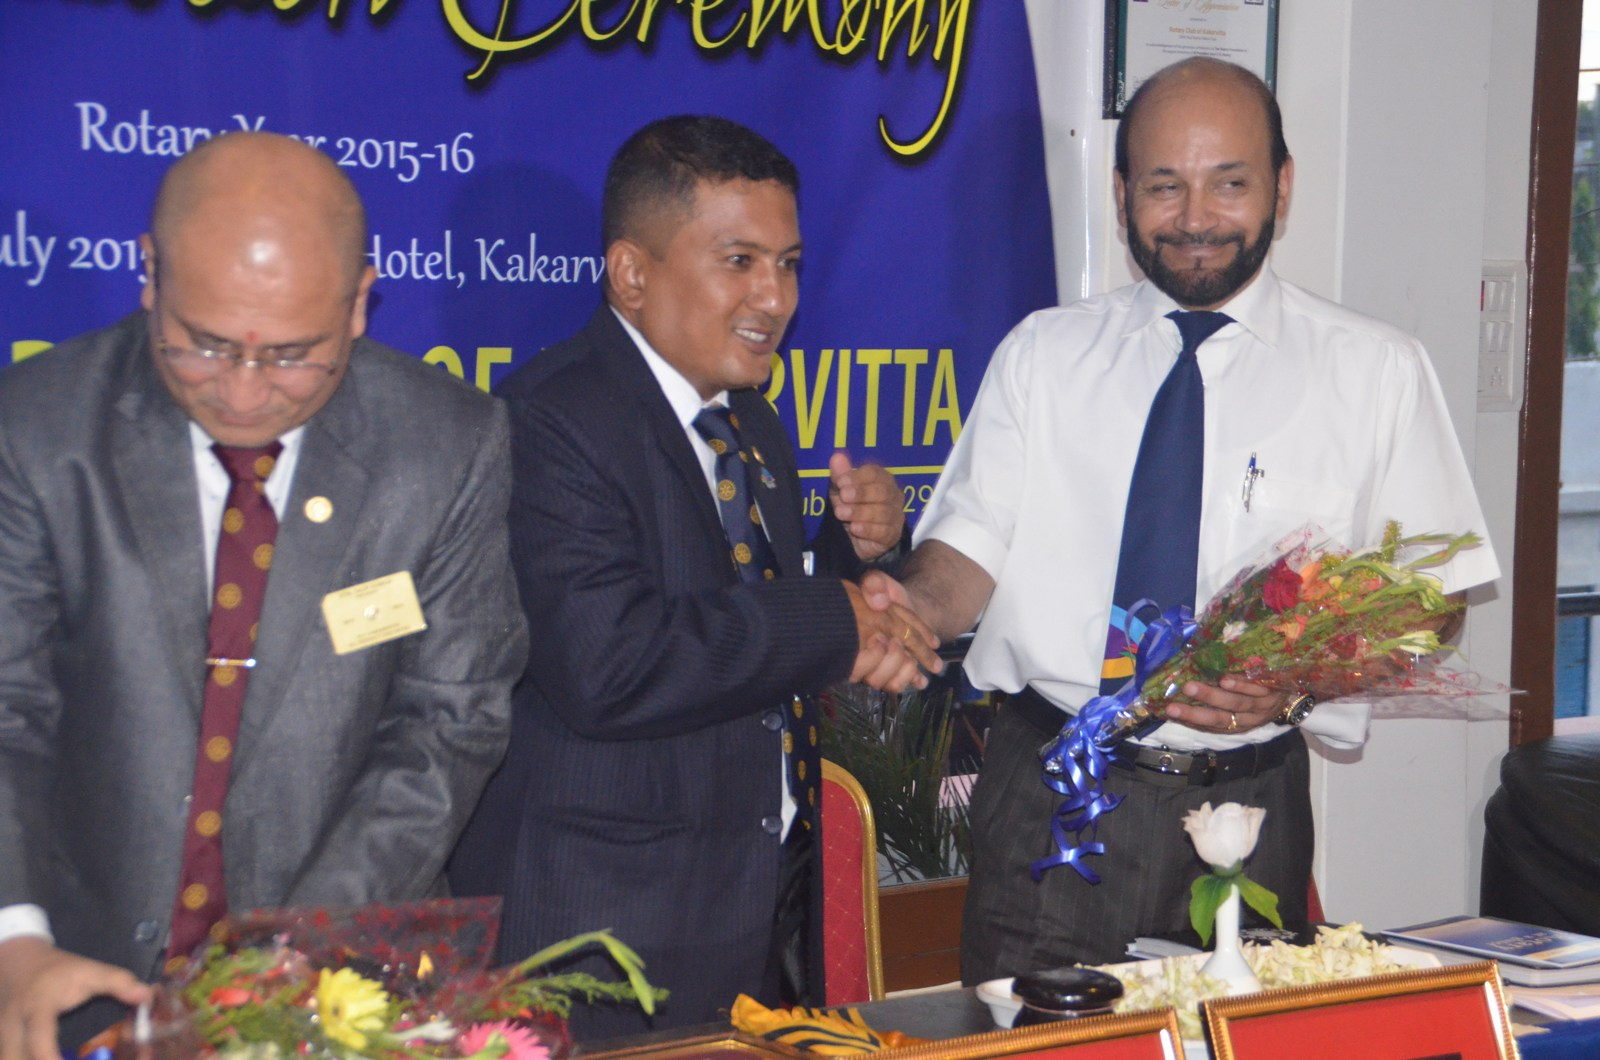 6th Installation Ceremony 2015 16 Rotary Club Of Kakarvitta 2